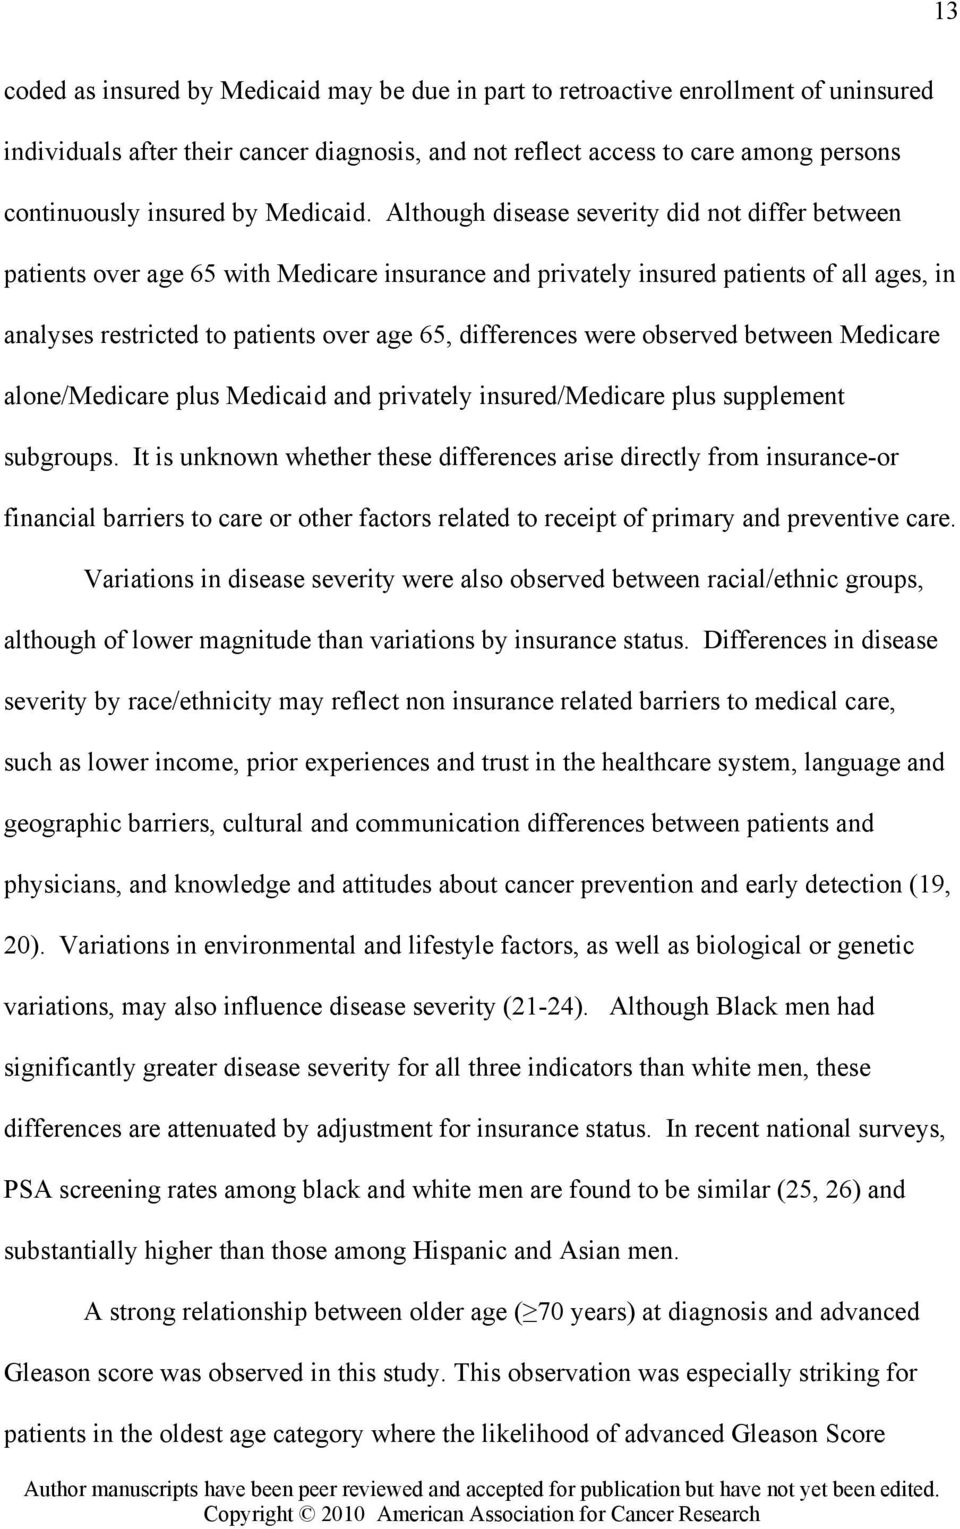 Although disease severity did not differ between patients over age 65 with Medicare insurance and privately insured patients of all ages, in analyses restricted to patients over age 65, differences